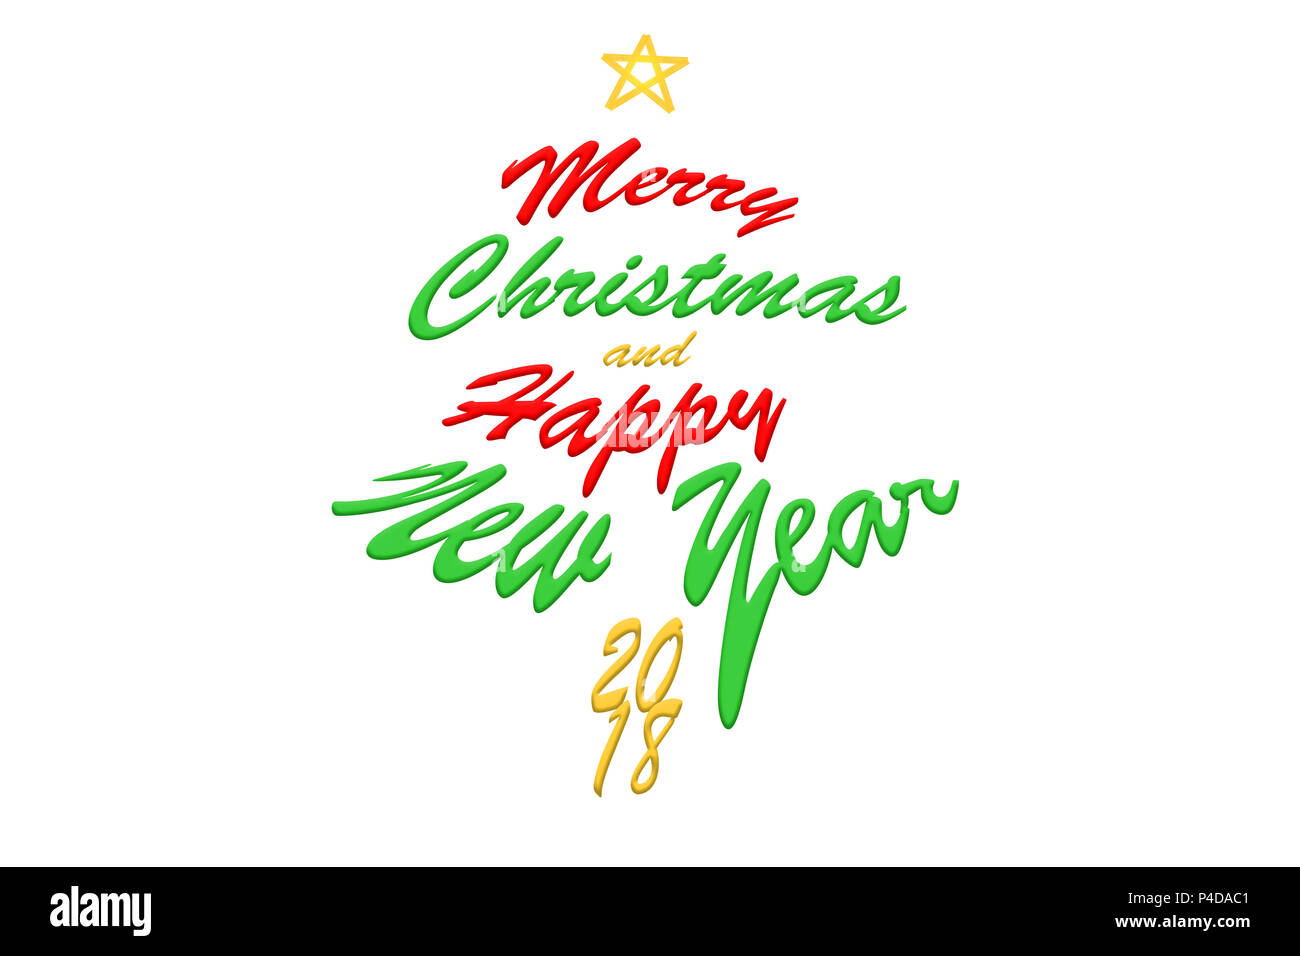 2018 merry christmas and happy new year text calligraphic lettering design card template creative typography for holiday greeting gift poster calli